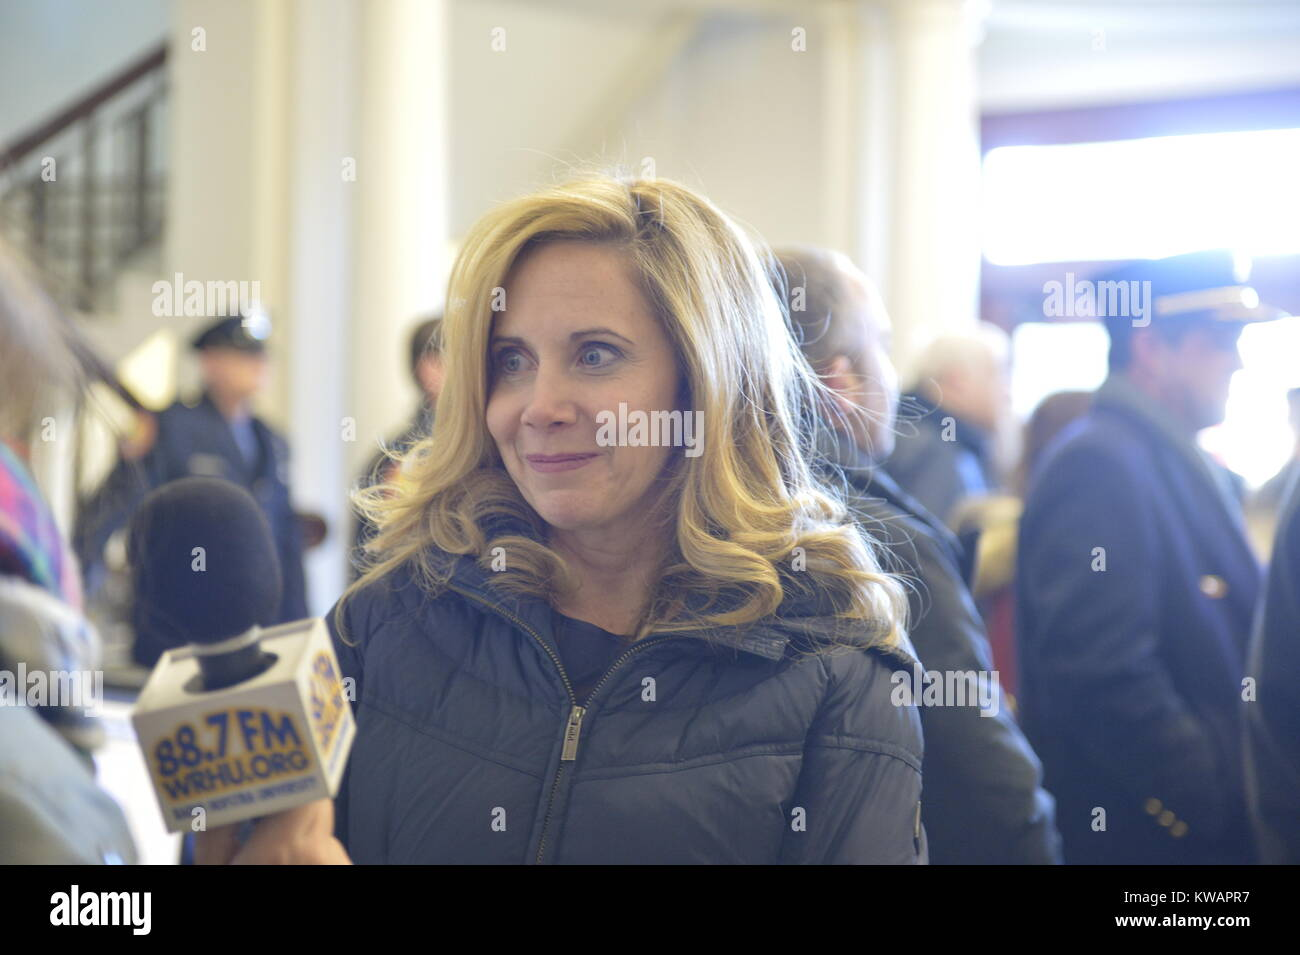 Mineola, New York, USA. January 1, 2018. Town of Hempstead Supervisor LAURA GILLEN, a Democrat, is interviewed by Stock Photo